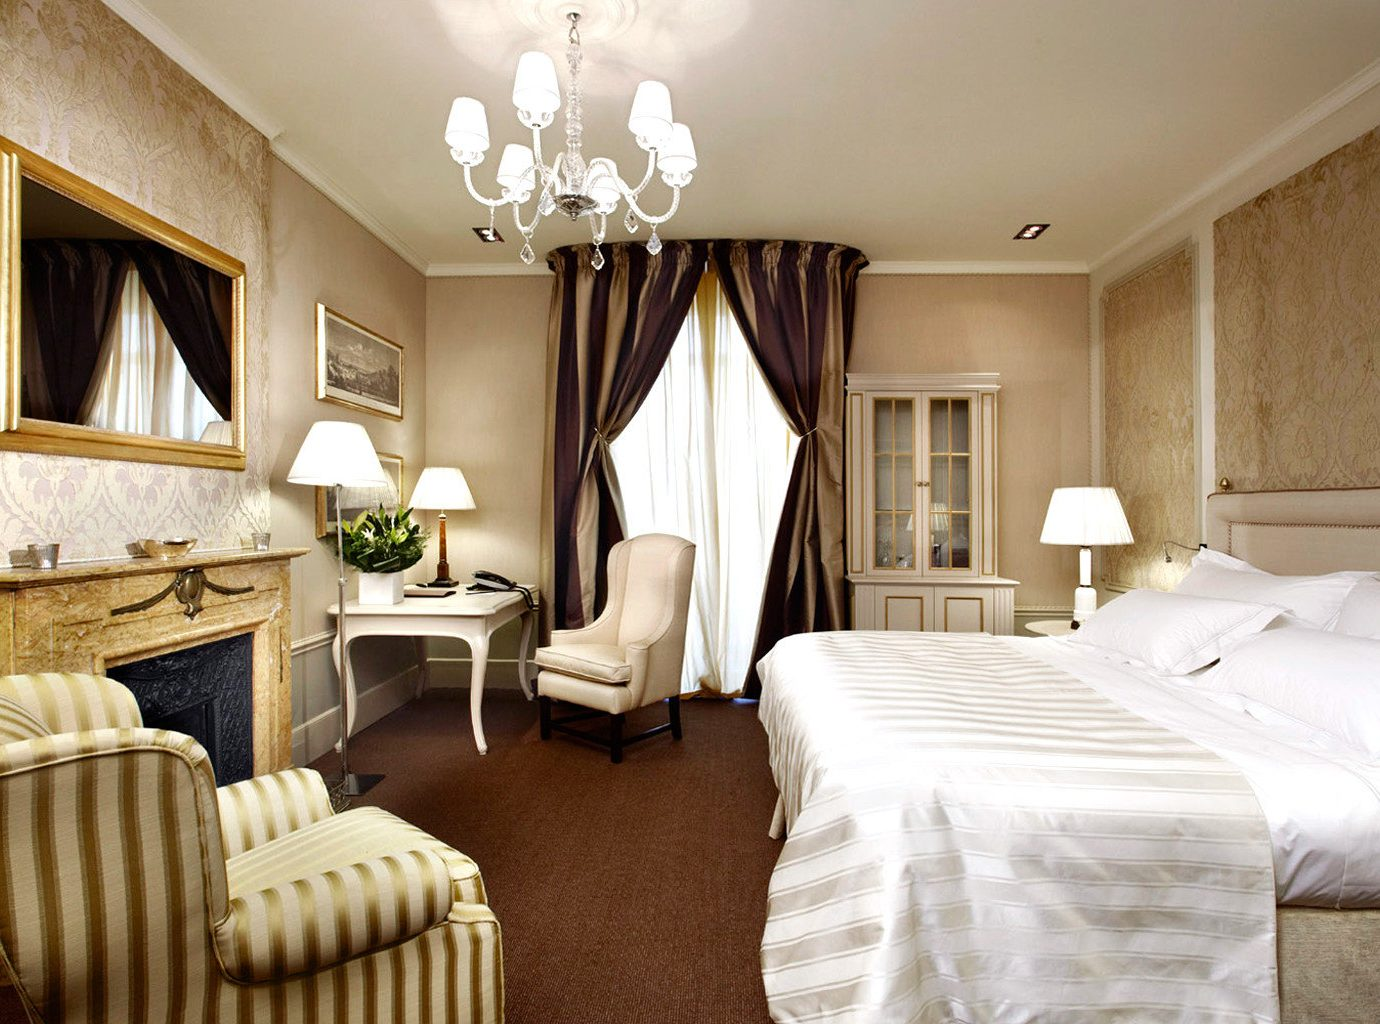 Bedroom City Classic Dining Eat Elegant Lounge Luxury Romantic property Suite home cottage living room